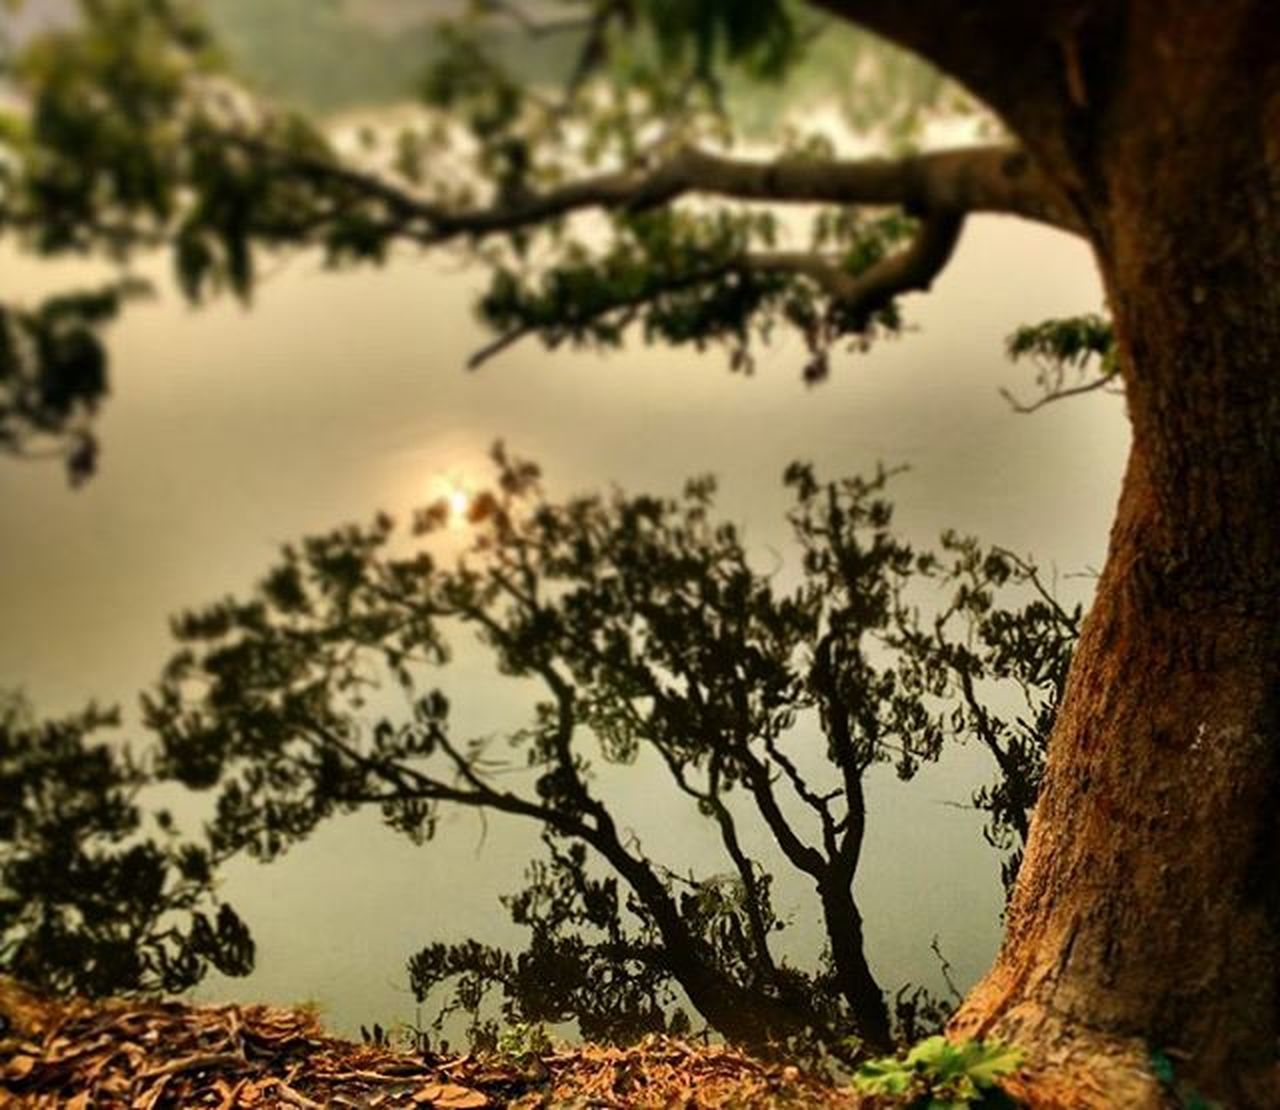 tree, tree trunk, nature, branch, no people, outdoors, scenics, tranquil scene, beauty in nature, growth, tranquility, day, sky, close-up